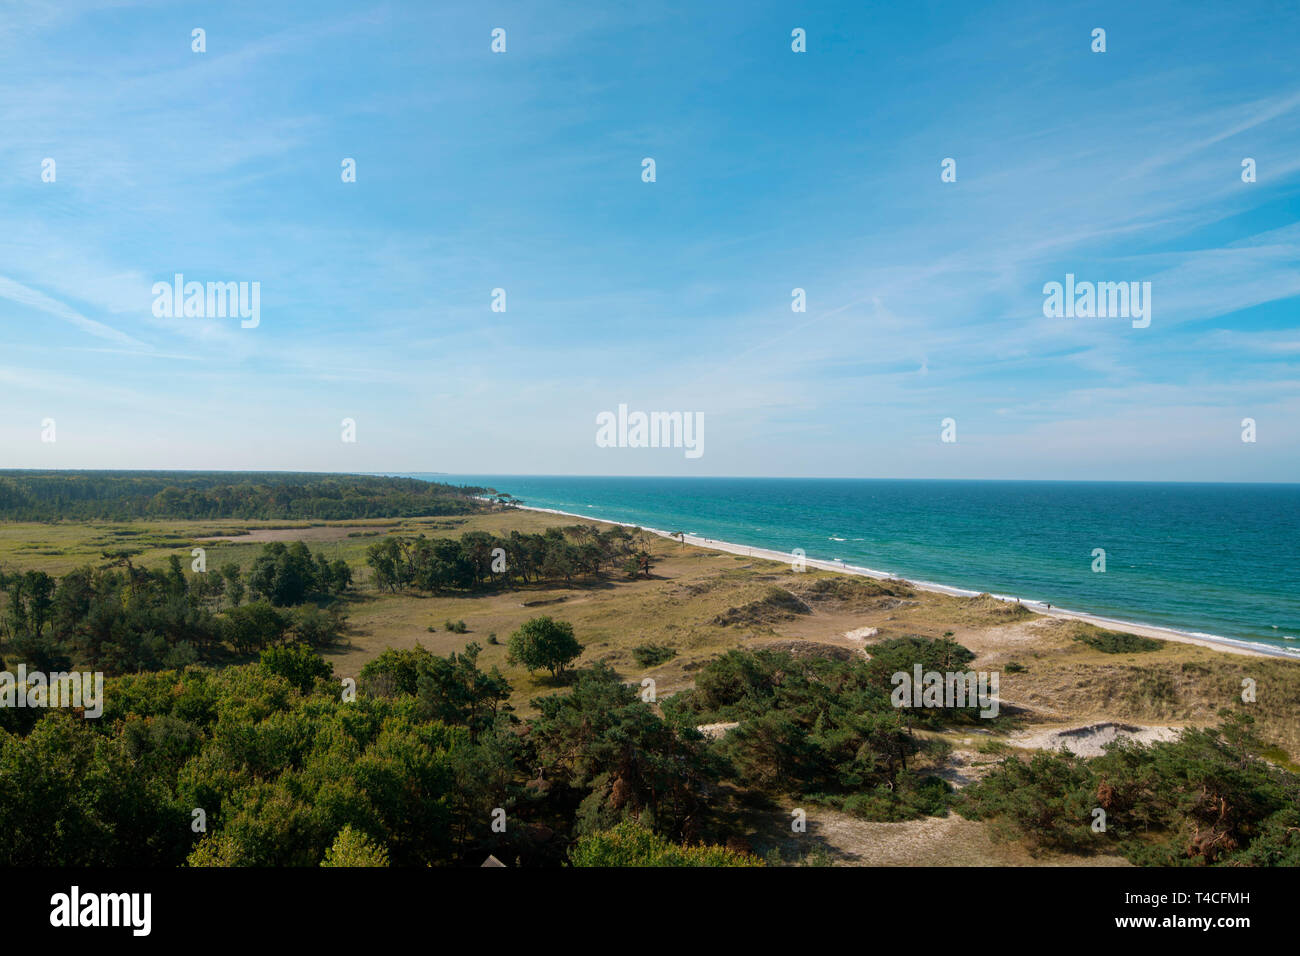 view from lighthouse Darsser Ort, Western Pomerania Lagoon Area National Park, Fischland-Darss-Zingst, Mecklenburg-Western Pomerania, Germany, Europe Stock Photo